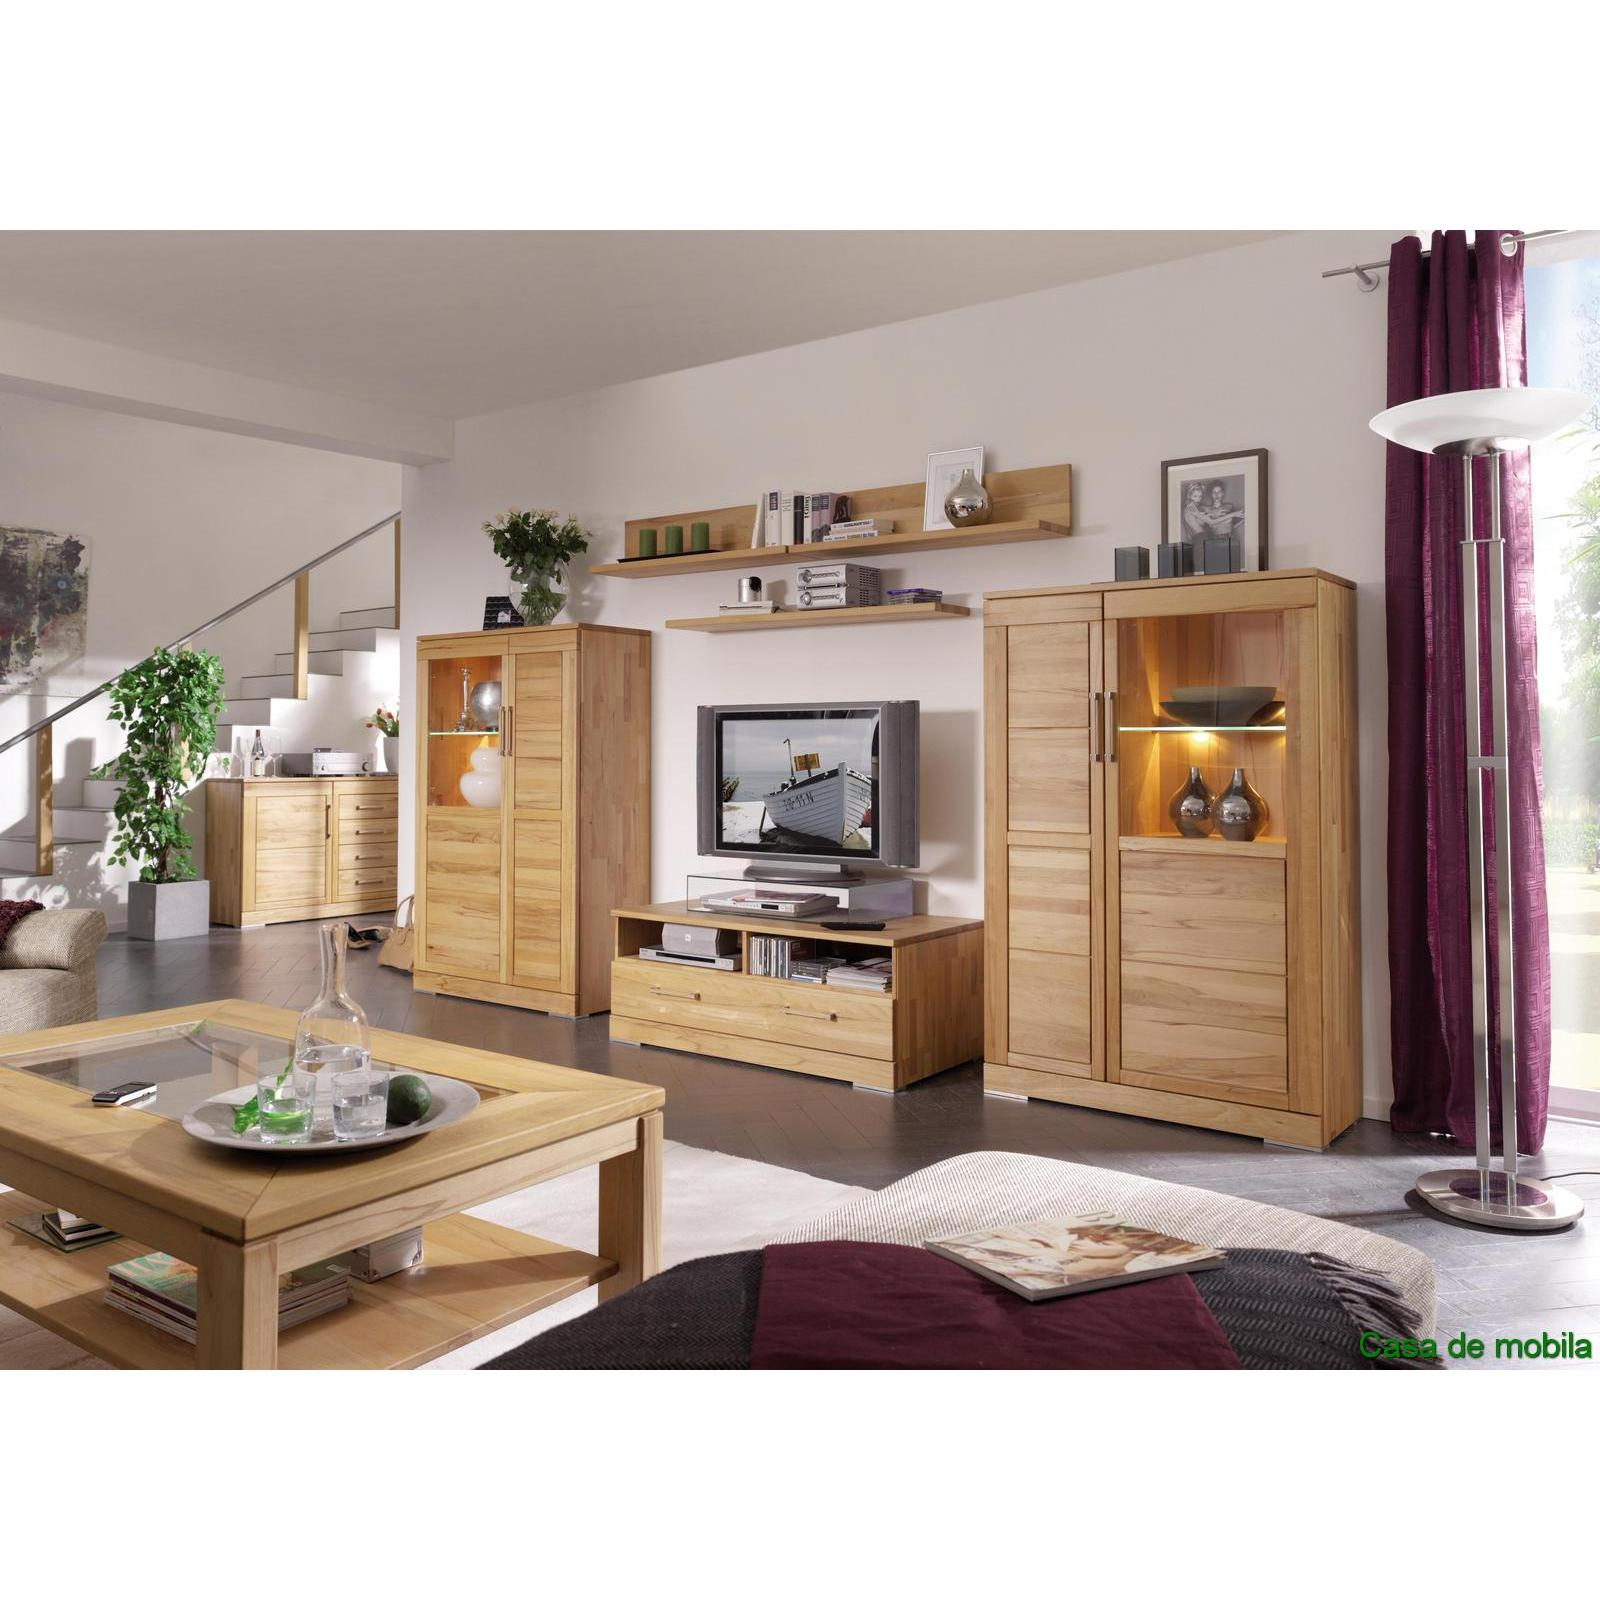 echtholz wohnwand wohnzimmerm bel rotkernbuche massiv natur ge lt casera. Black Bedroom Furniture Sets. Home Design Ideas